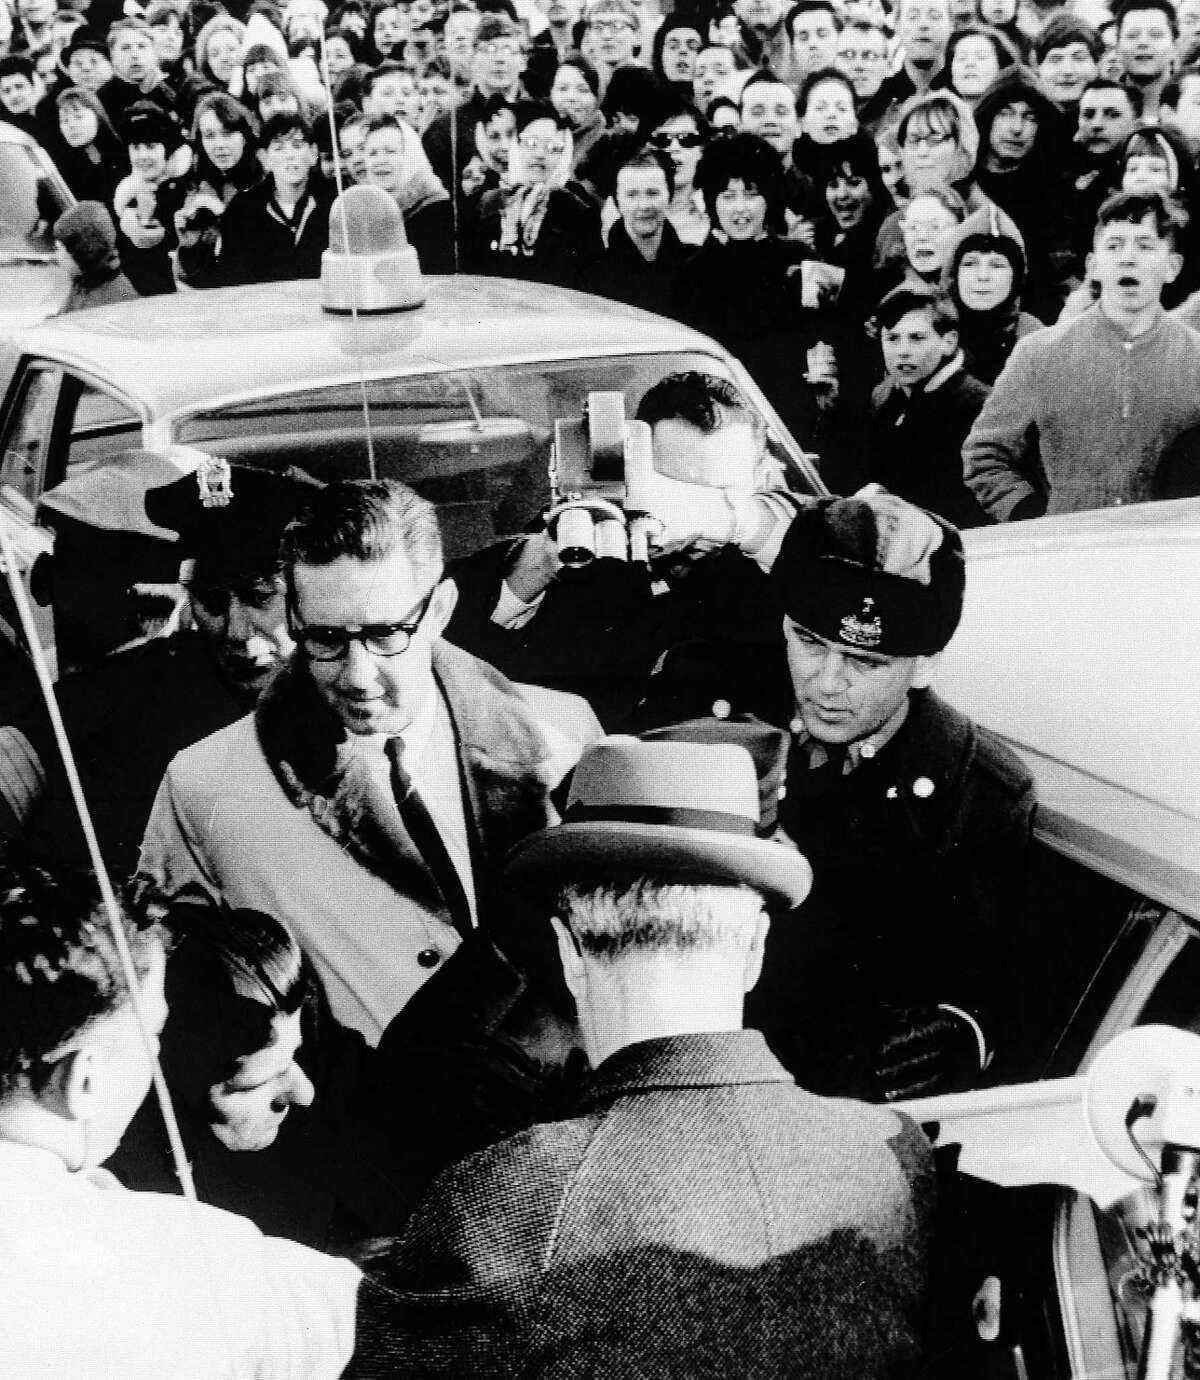 In this Feb. 26, 1967 black and white photo, the crowd jeers self-confessed Boston Strangler Albert DeSalvo, lower left, as he is led outside the Lynn, Mass. police station. Casting is underway in summer 2016 for 'Stranglehold,' a new movie that will focus in part on a man who claimed psychic powers who helped investigators search for clues for nearly a dozen unsolved murders of women in the 1960s.